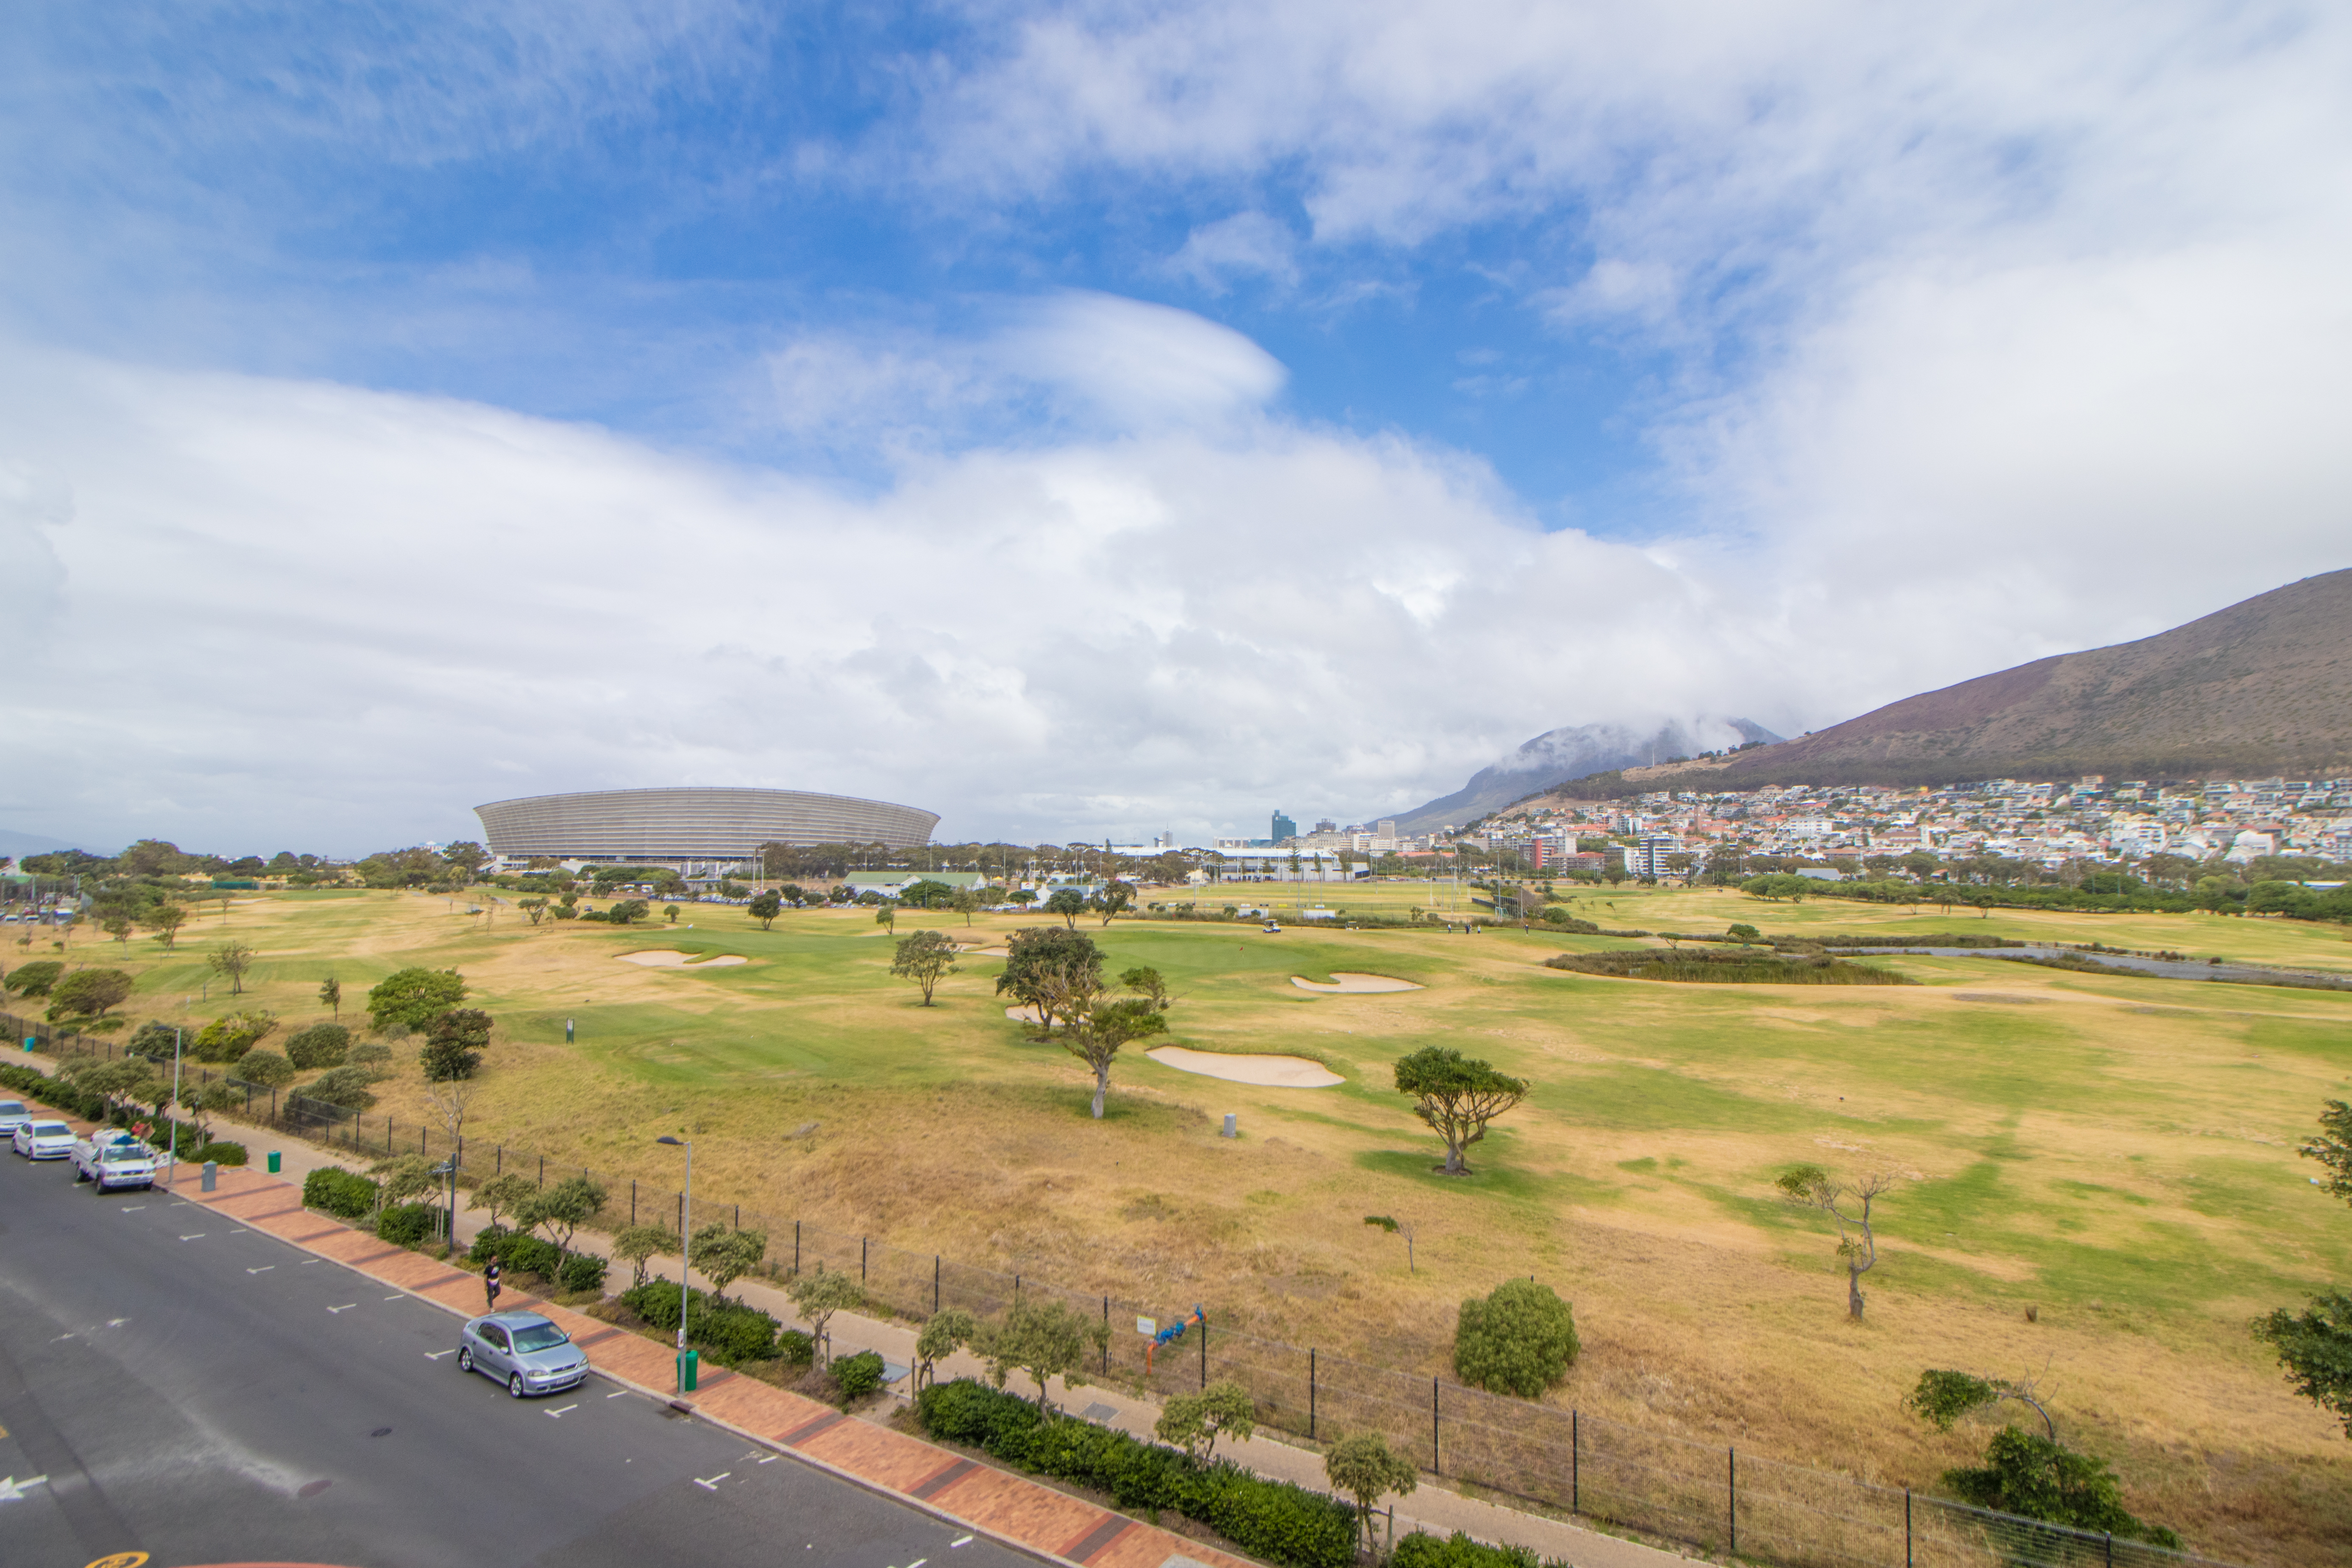 view of the stadium from Mouille Point Village